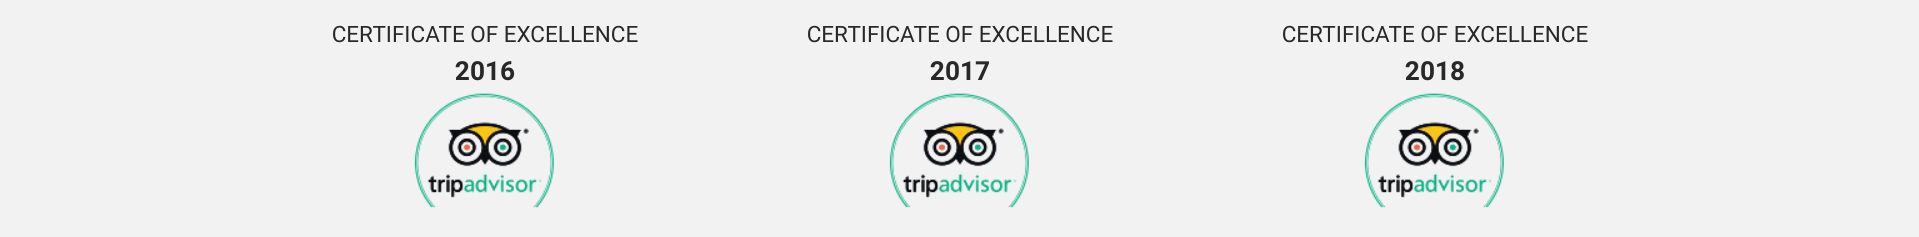 Certificate of Excellence Tripadvisor Mile High Wine Tours